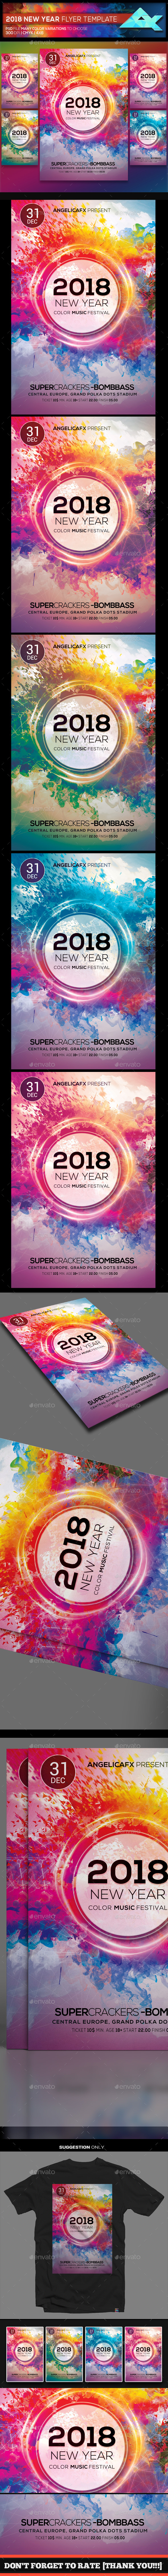 GraphicRiver 2018 New Year Color Music Festival Flyer Template 21019712